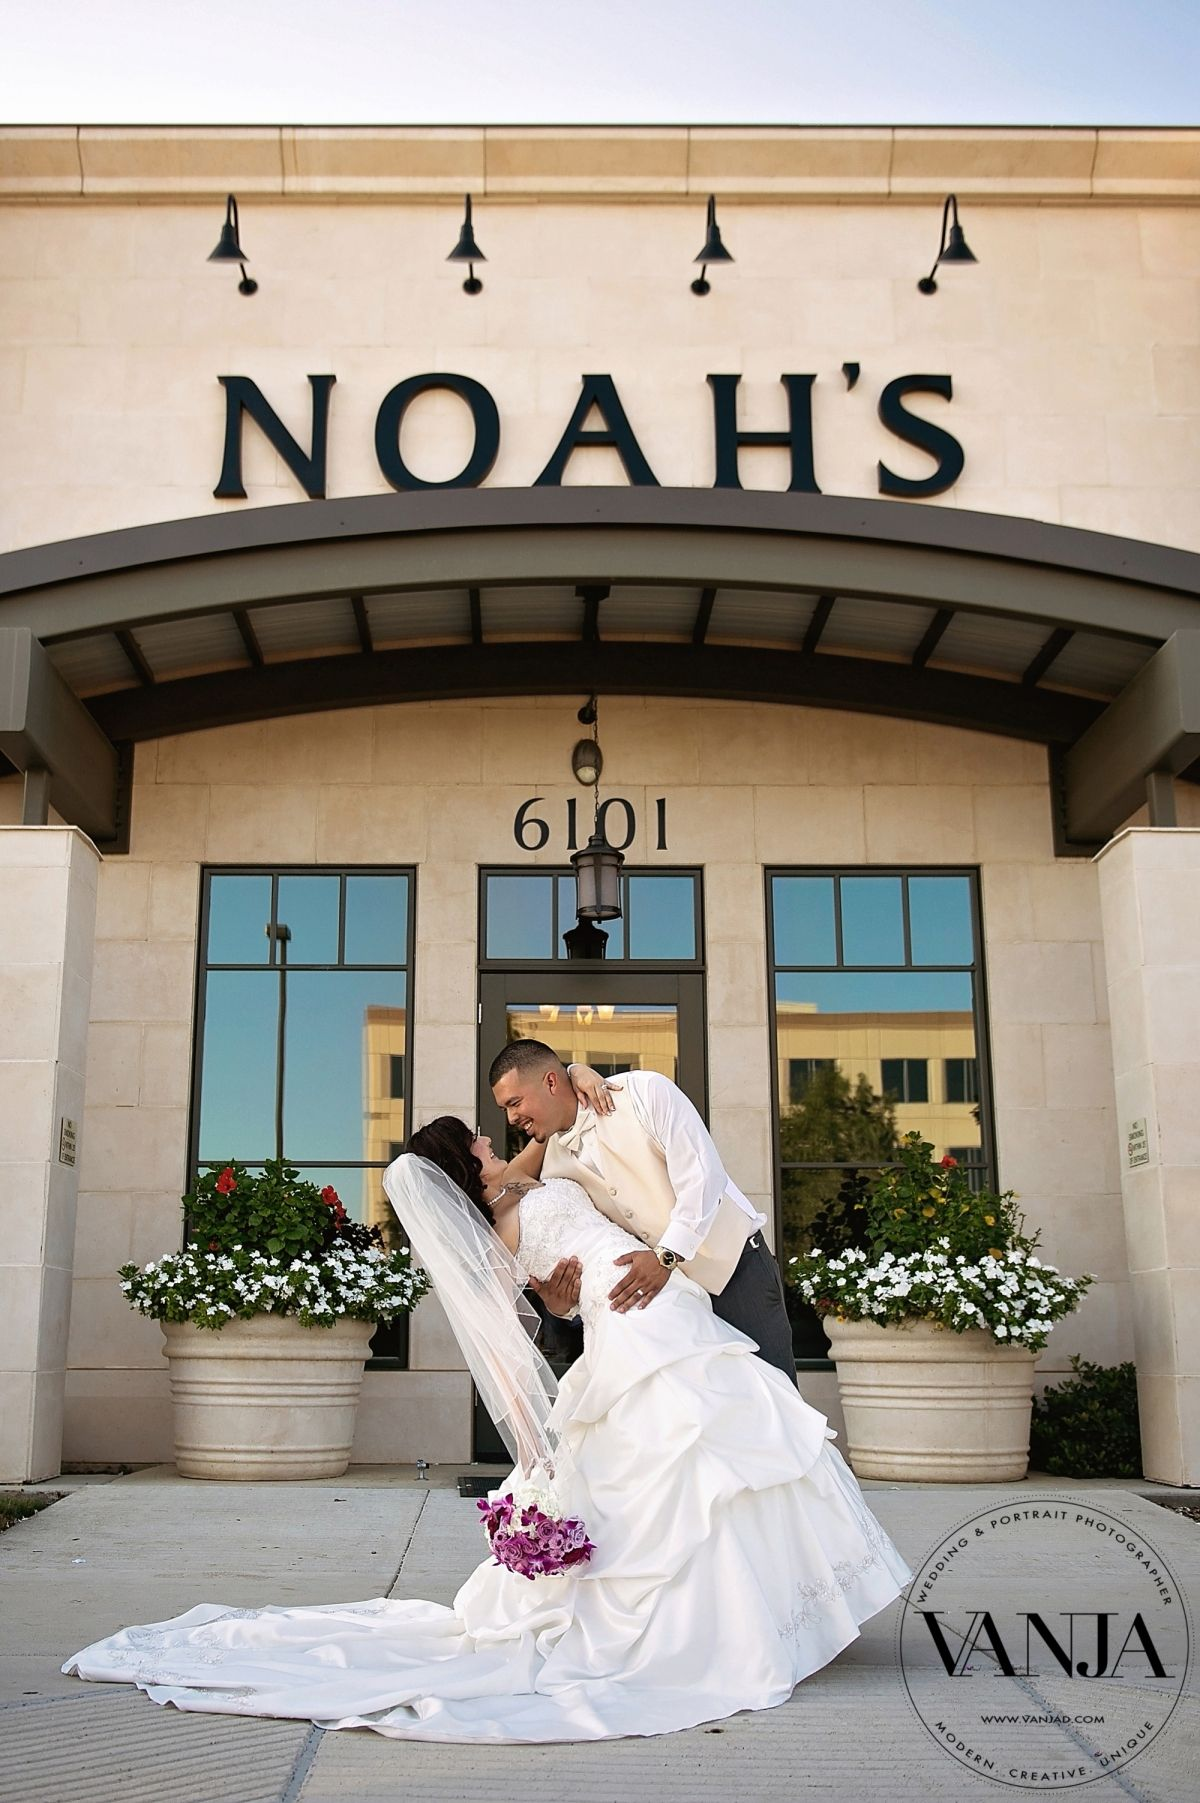 Noah S Event Center Irving Las Colinas Wedding Beautiful Bride And Groom Portrait In Front Of The